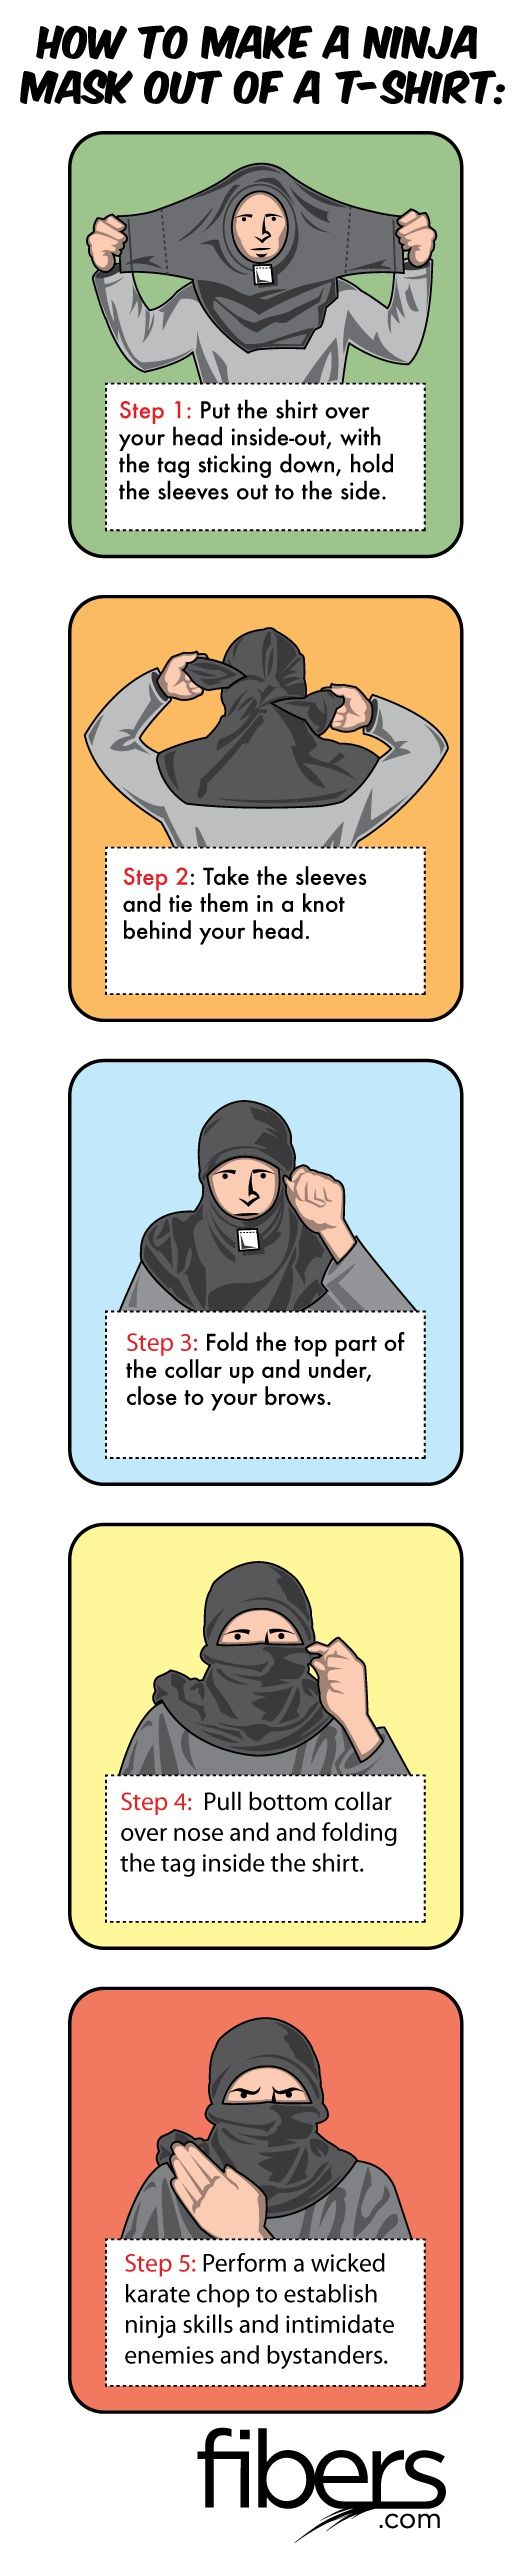 How to Make a Ninja Mask Out of a T-Shirt in Just 5 Easy Steps | 8-bit Nerds